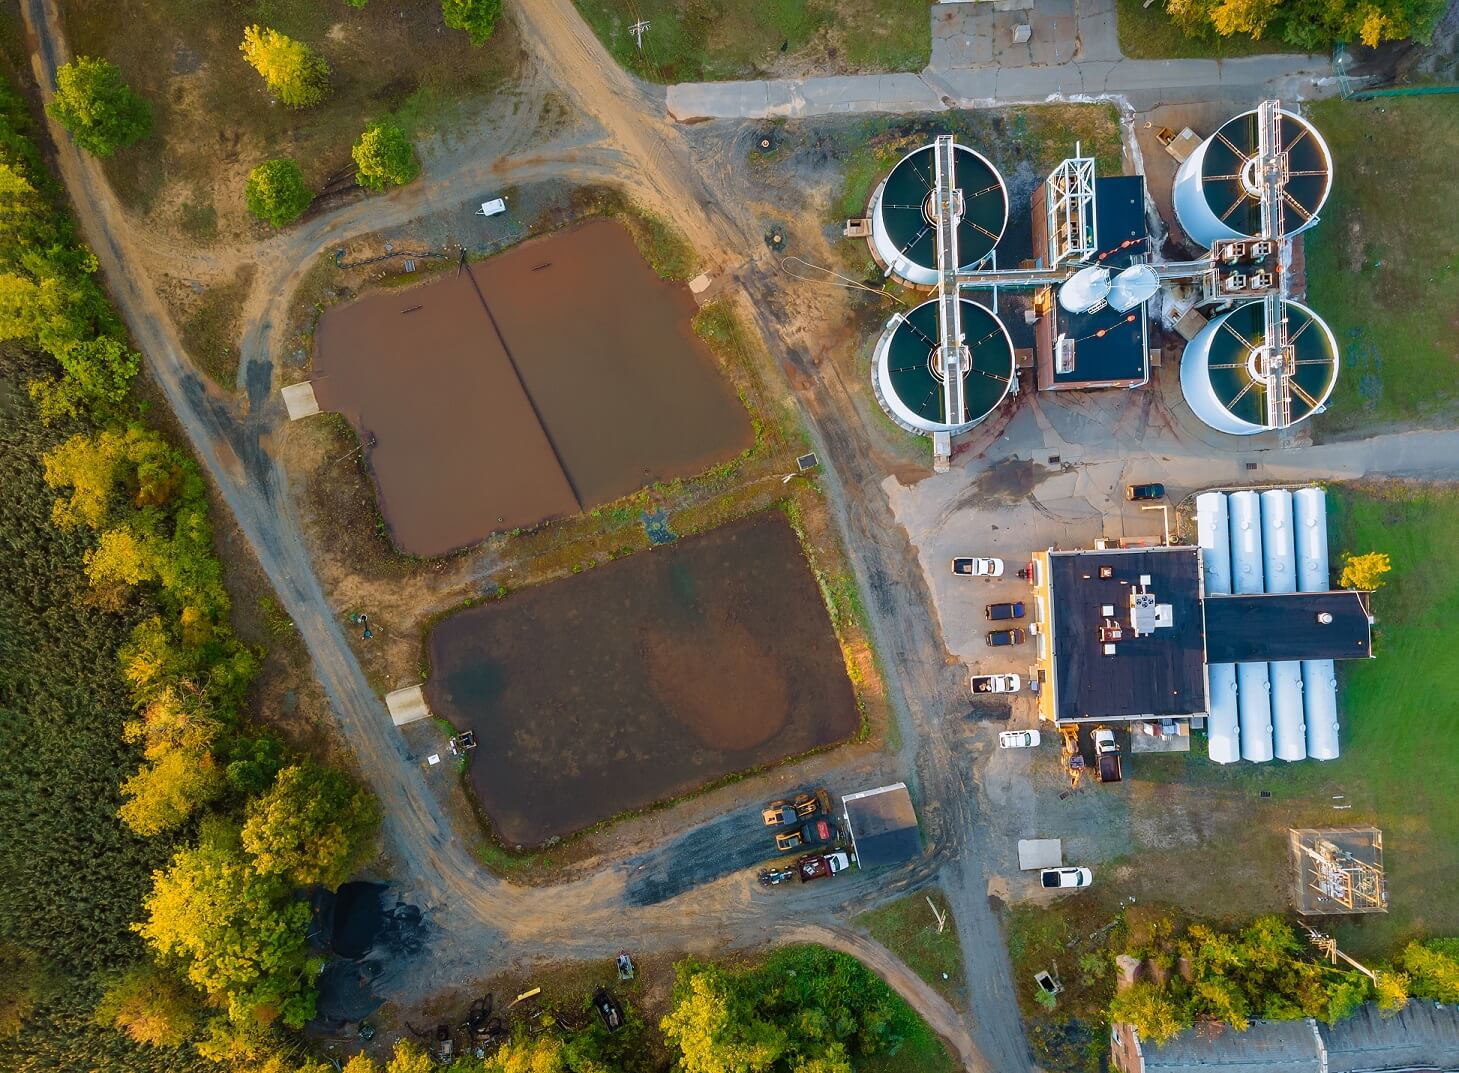 aerial-view-sewage-treatment-plant-modern-wastewater-industrial-water-treatment